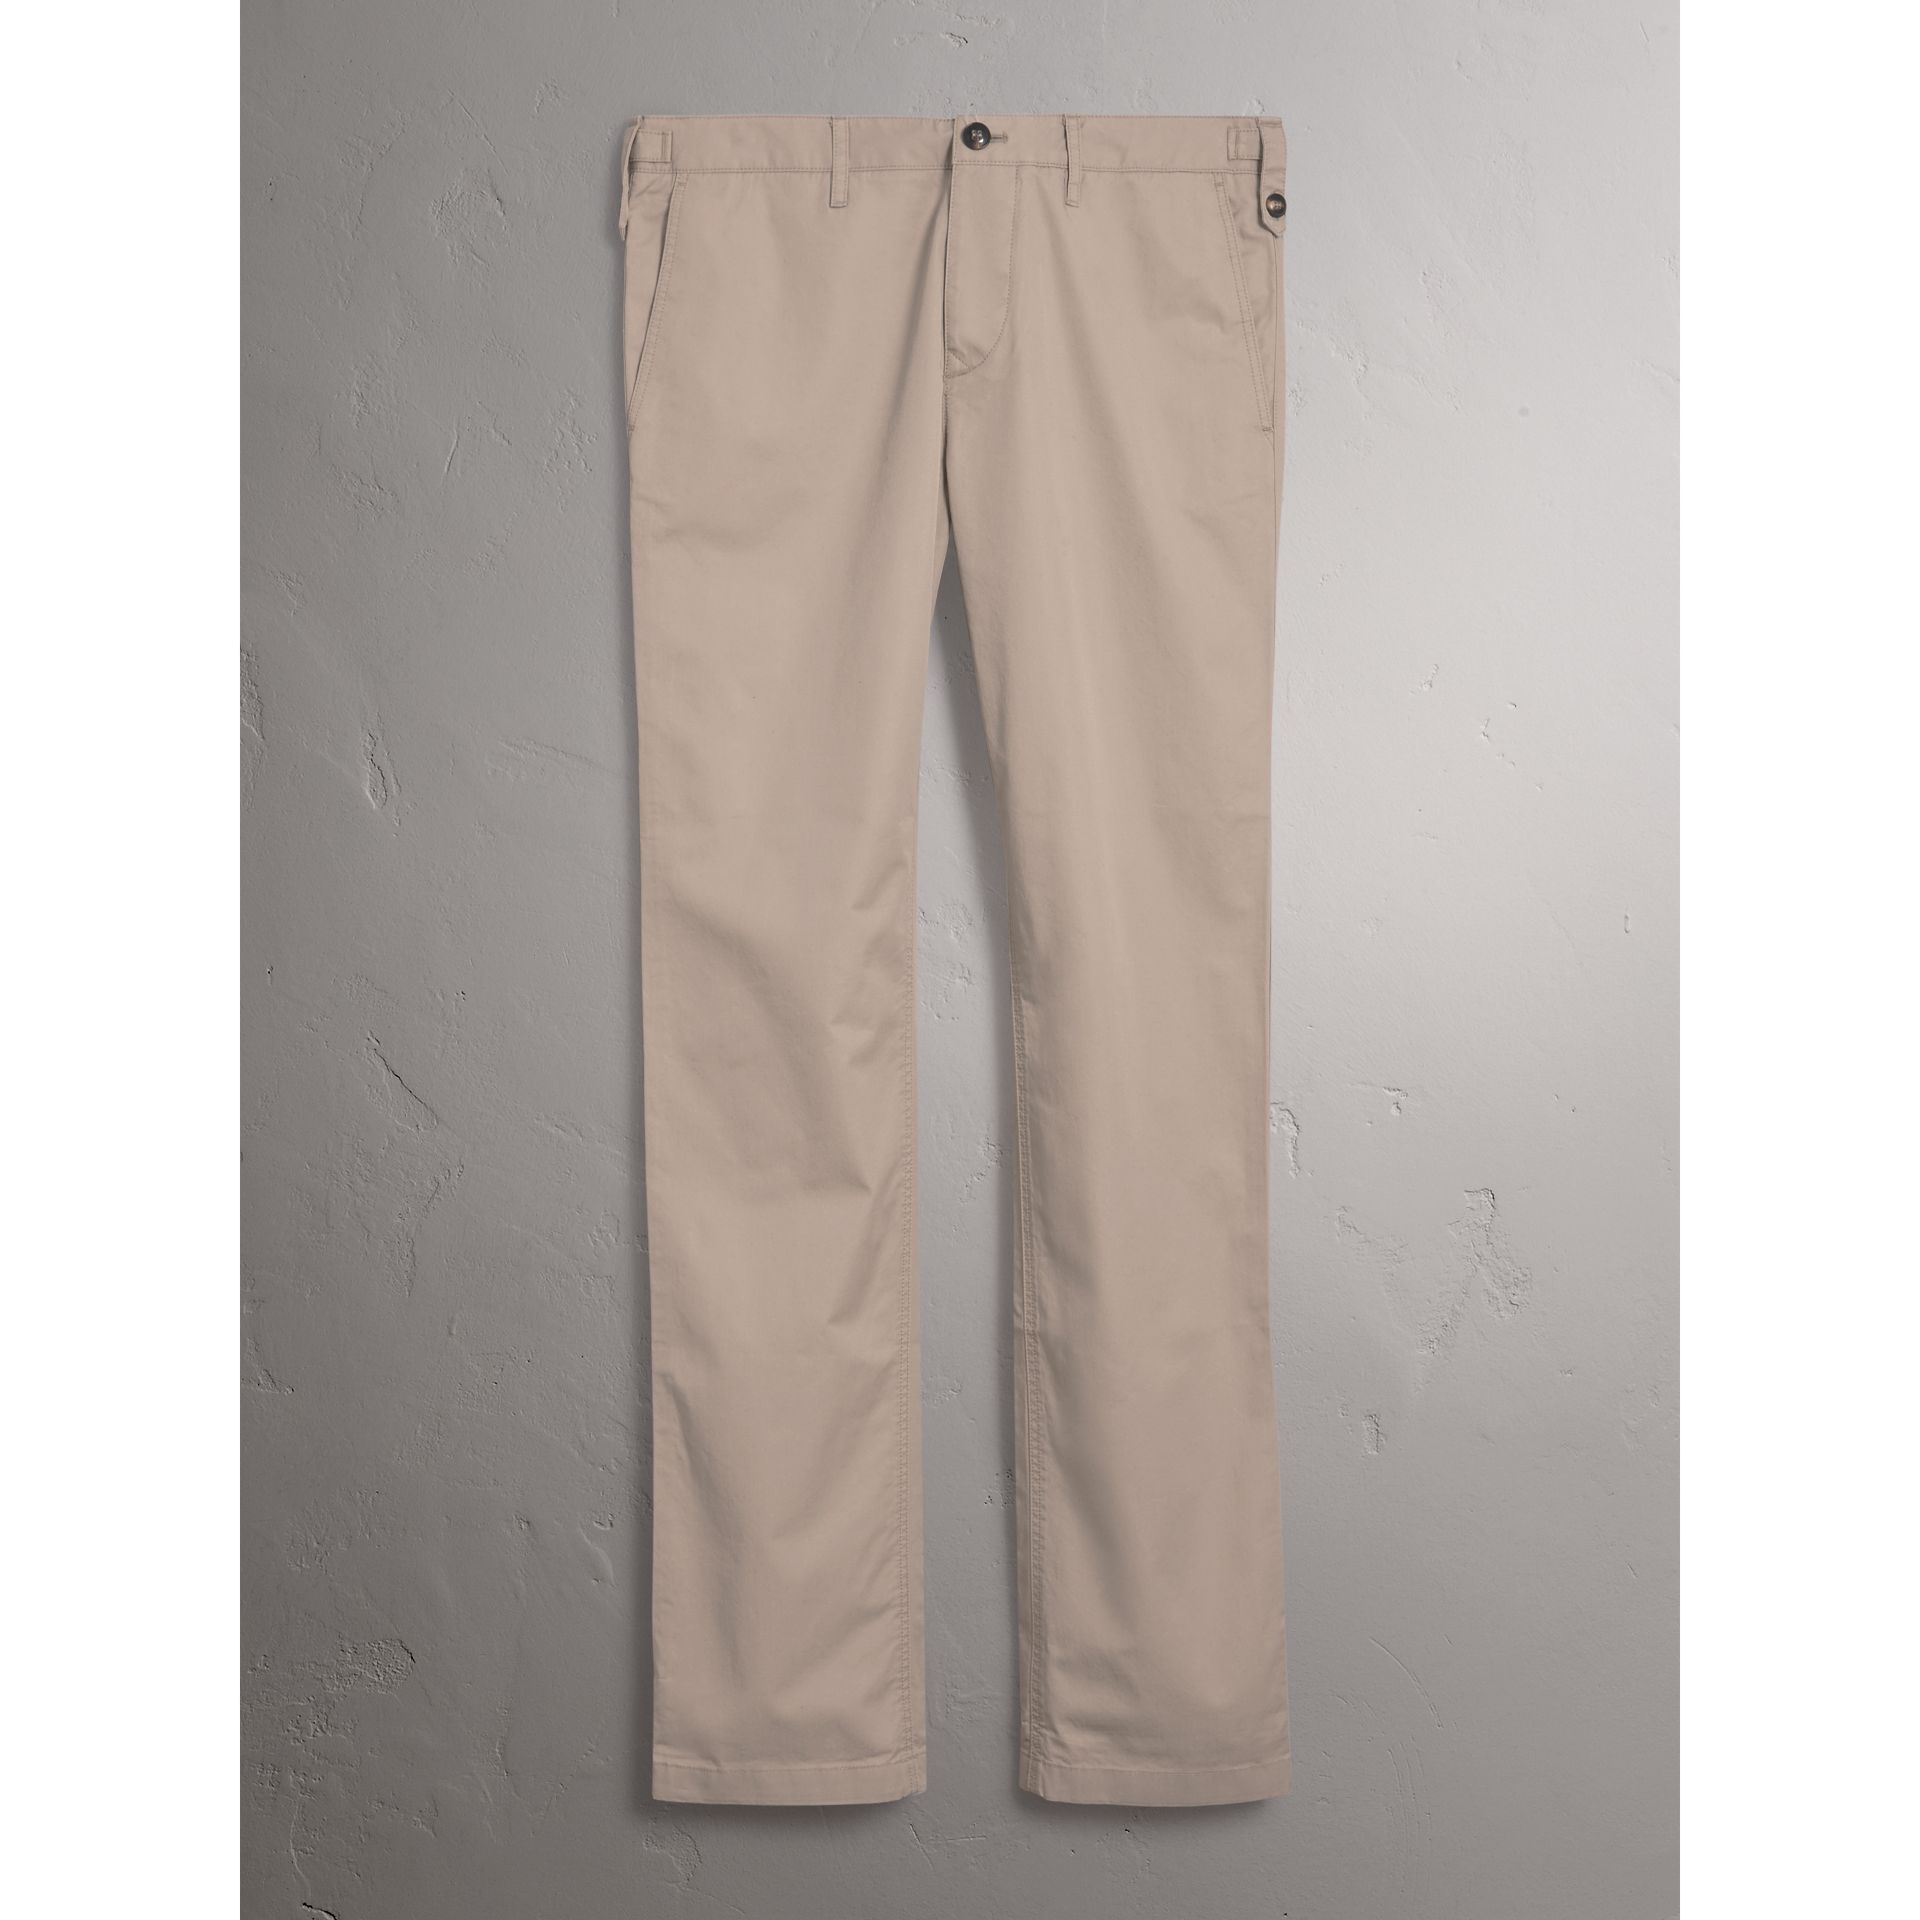 Straight Fit Cotton Chinos in Taupe - Men | Burberry - gallery image 3